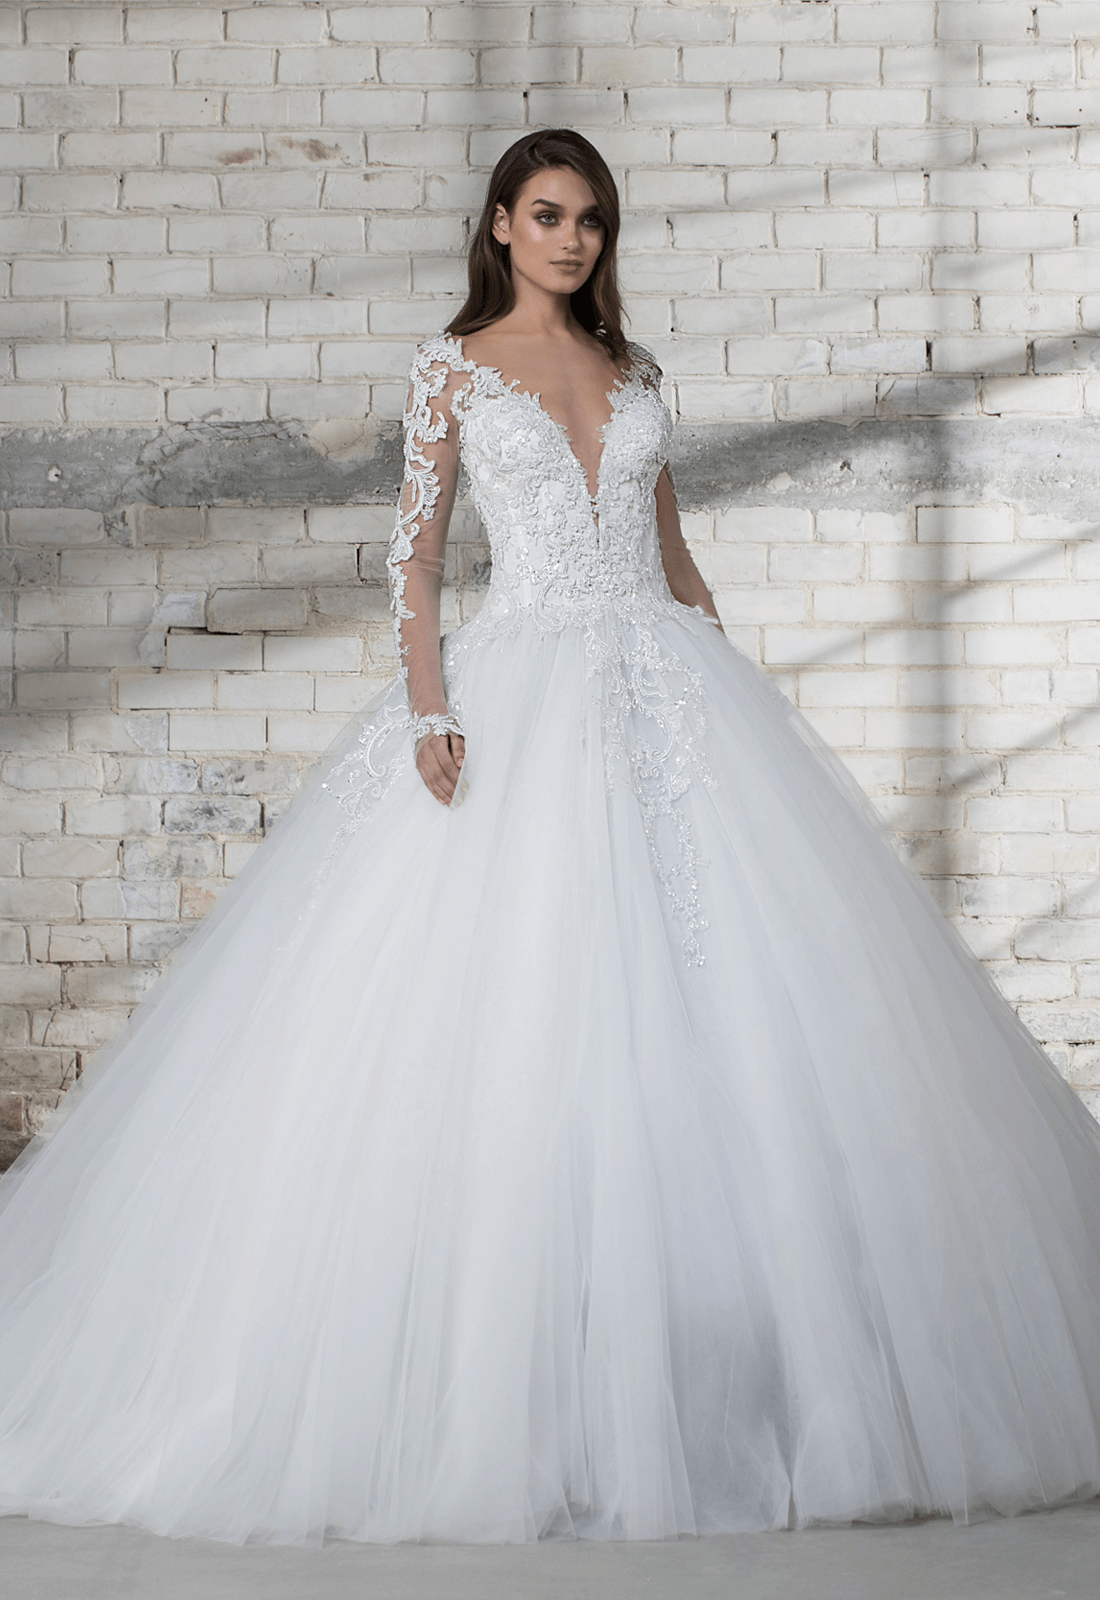 Style No 14670 Most Expensive Wedding Dress Expensive Wedding Dress Pnina Tornai Wedding Dress